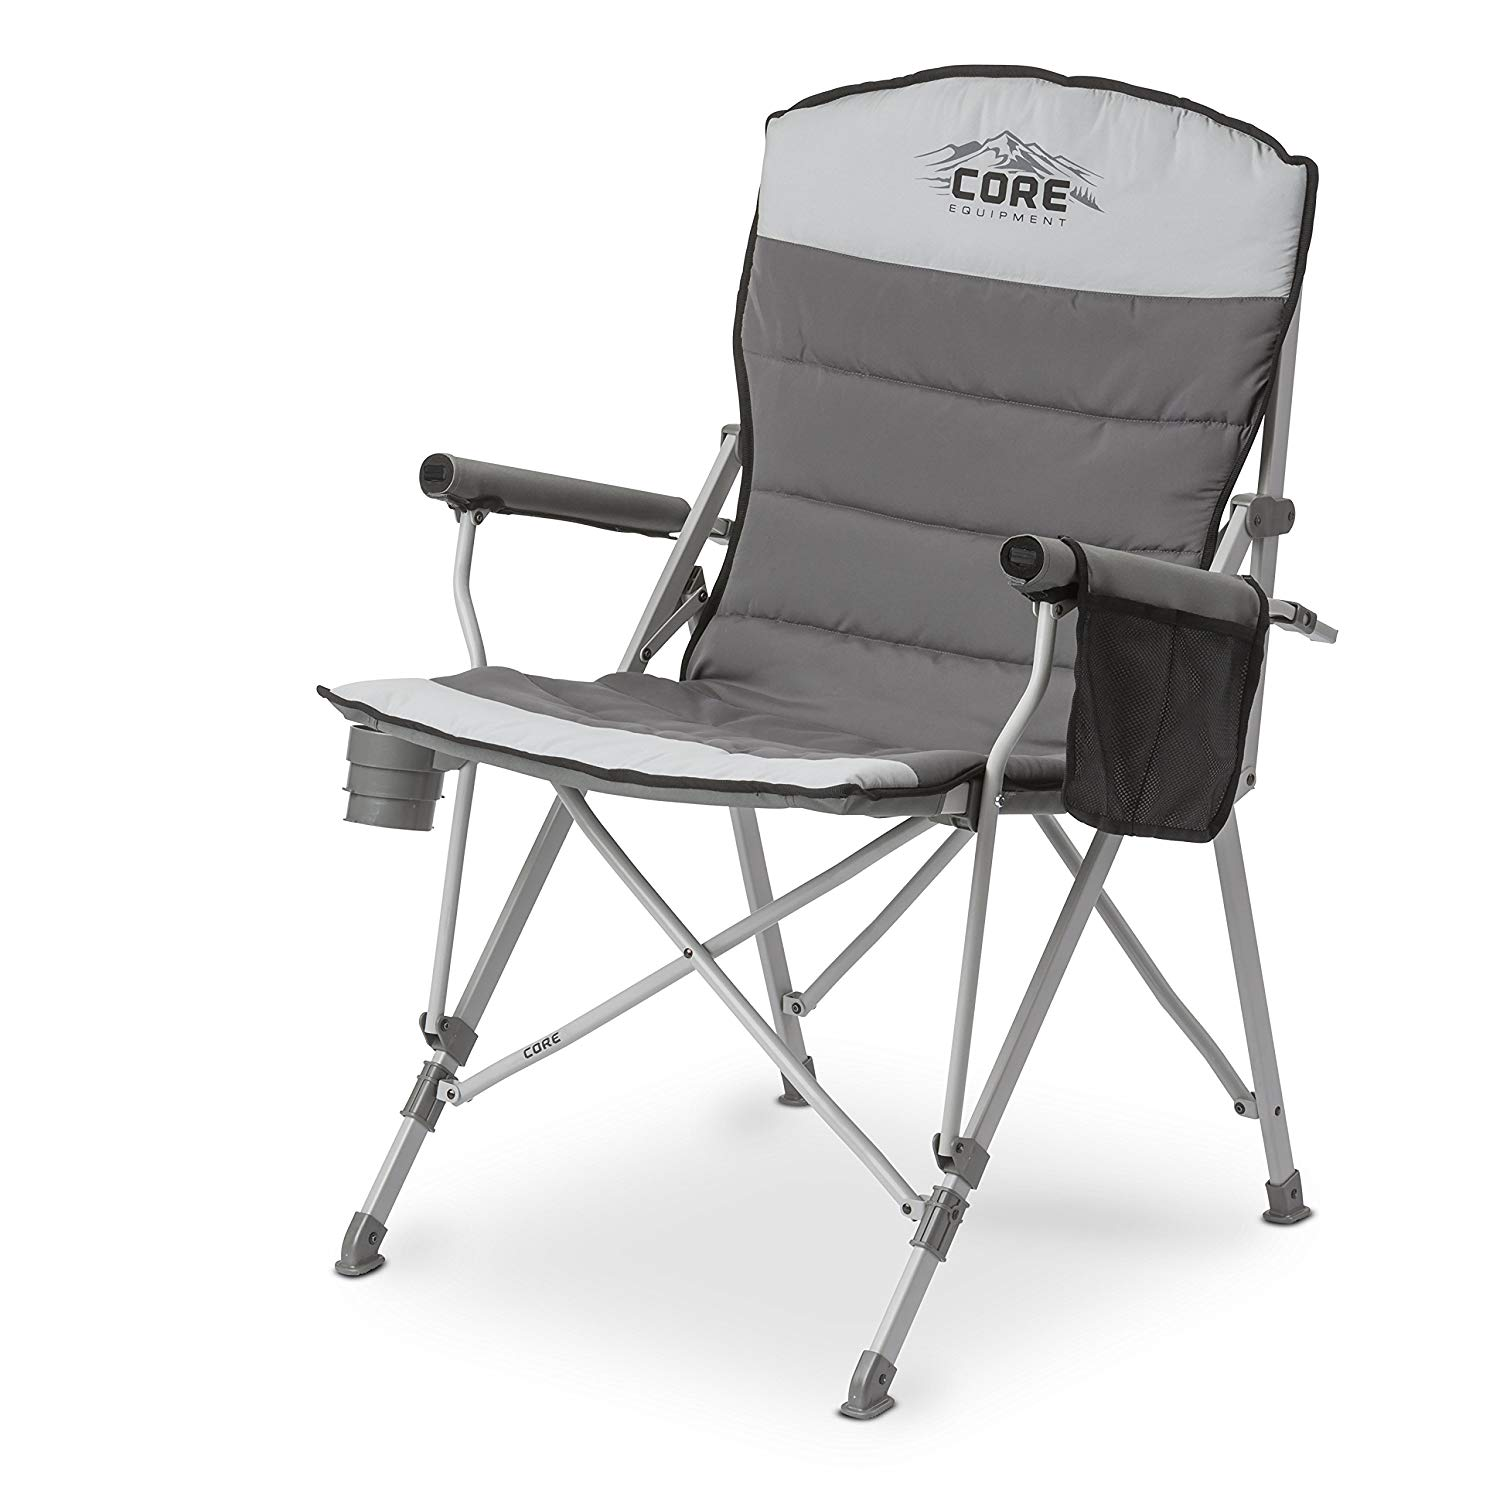 CORE 40021 Folding Padded Hard Arm Chair